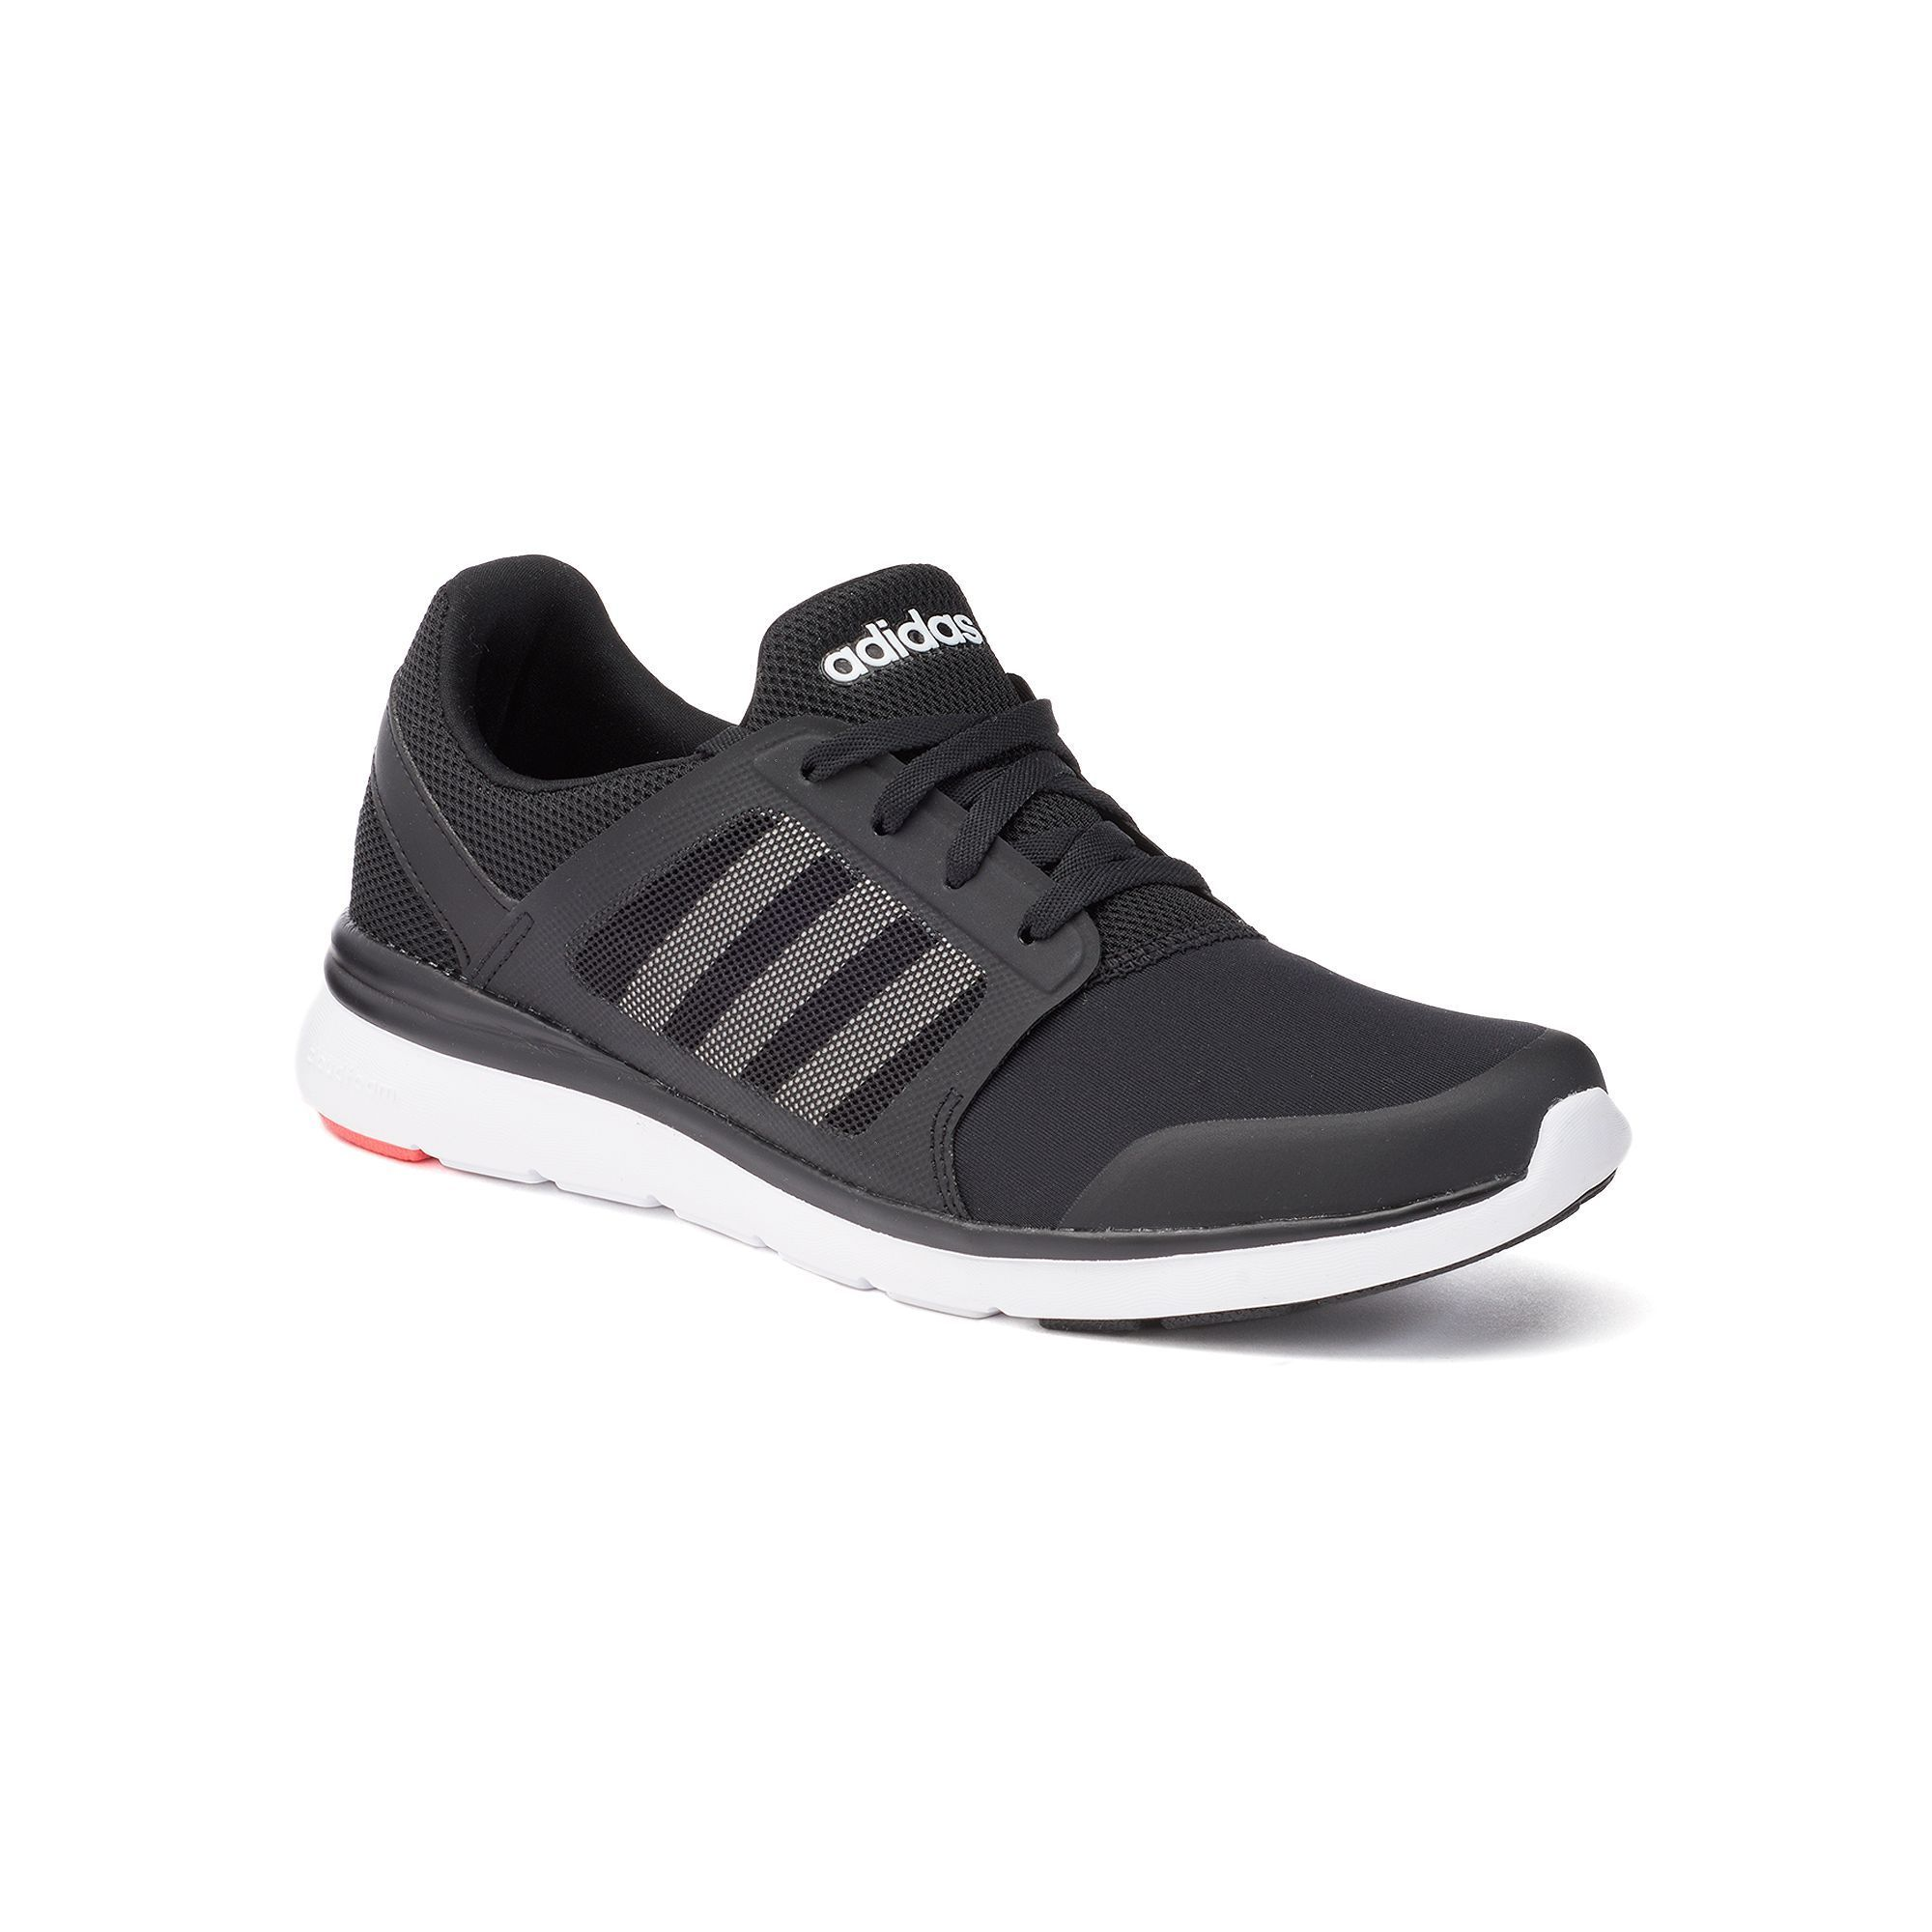 best service 99baa f1410 ... promo code for adidas neo cloudfoam xpression womens shoes size 8.5  black 8ee3d a5308